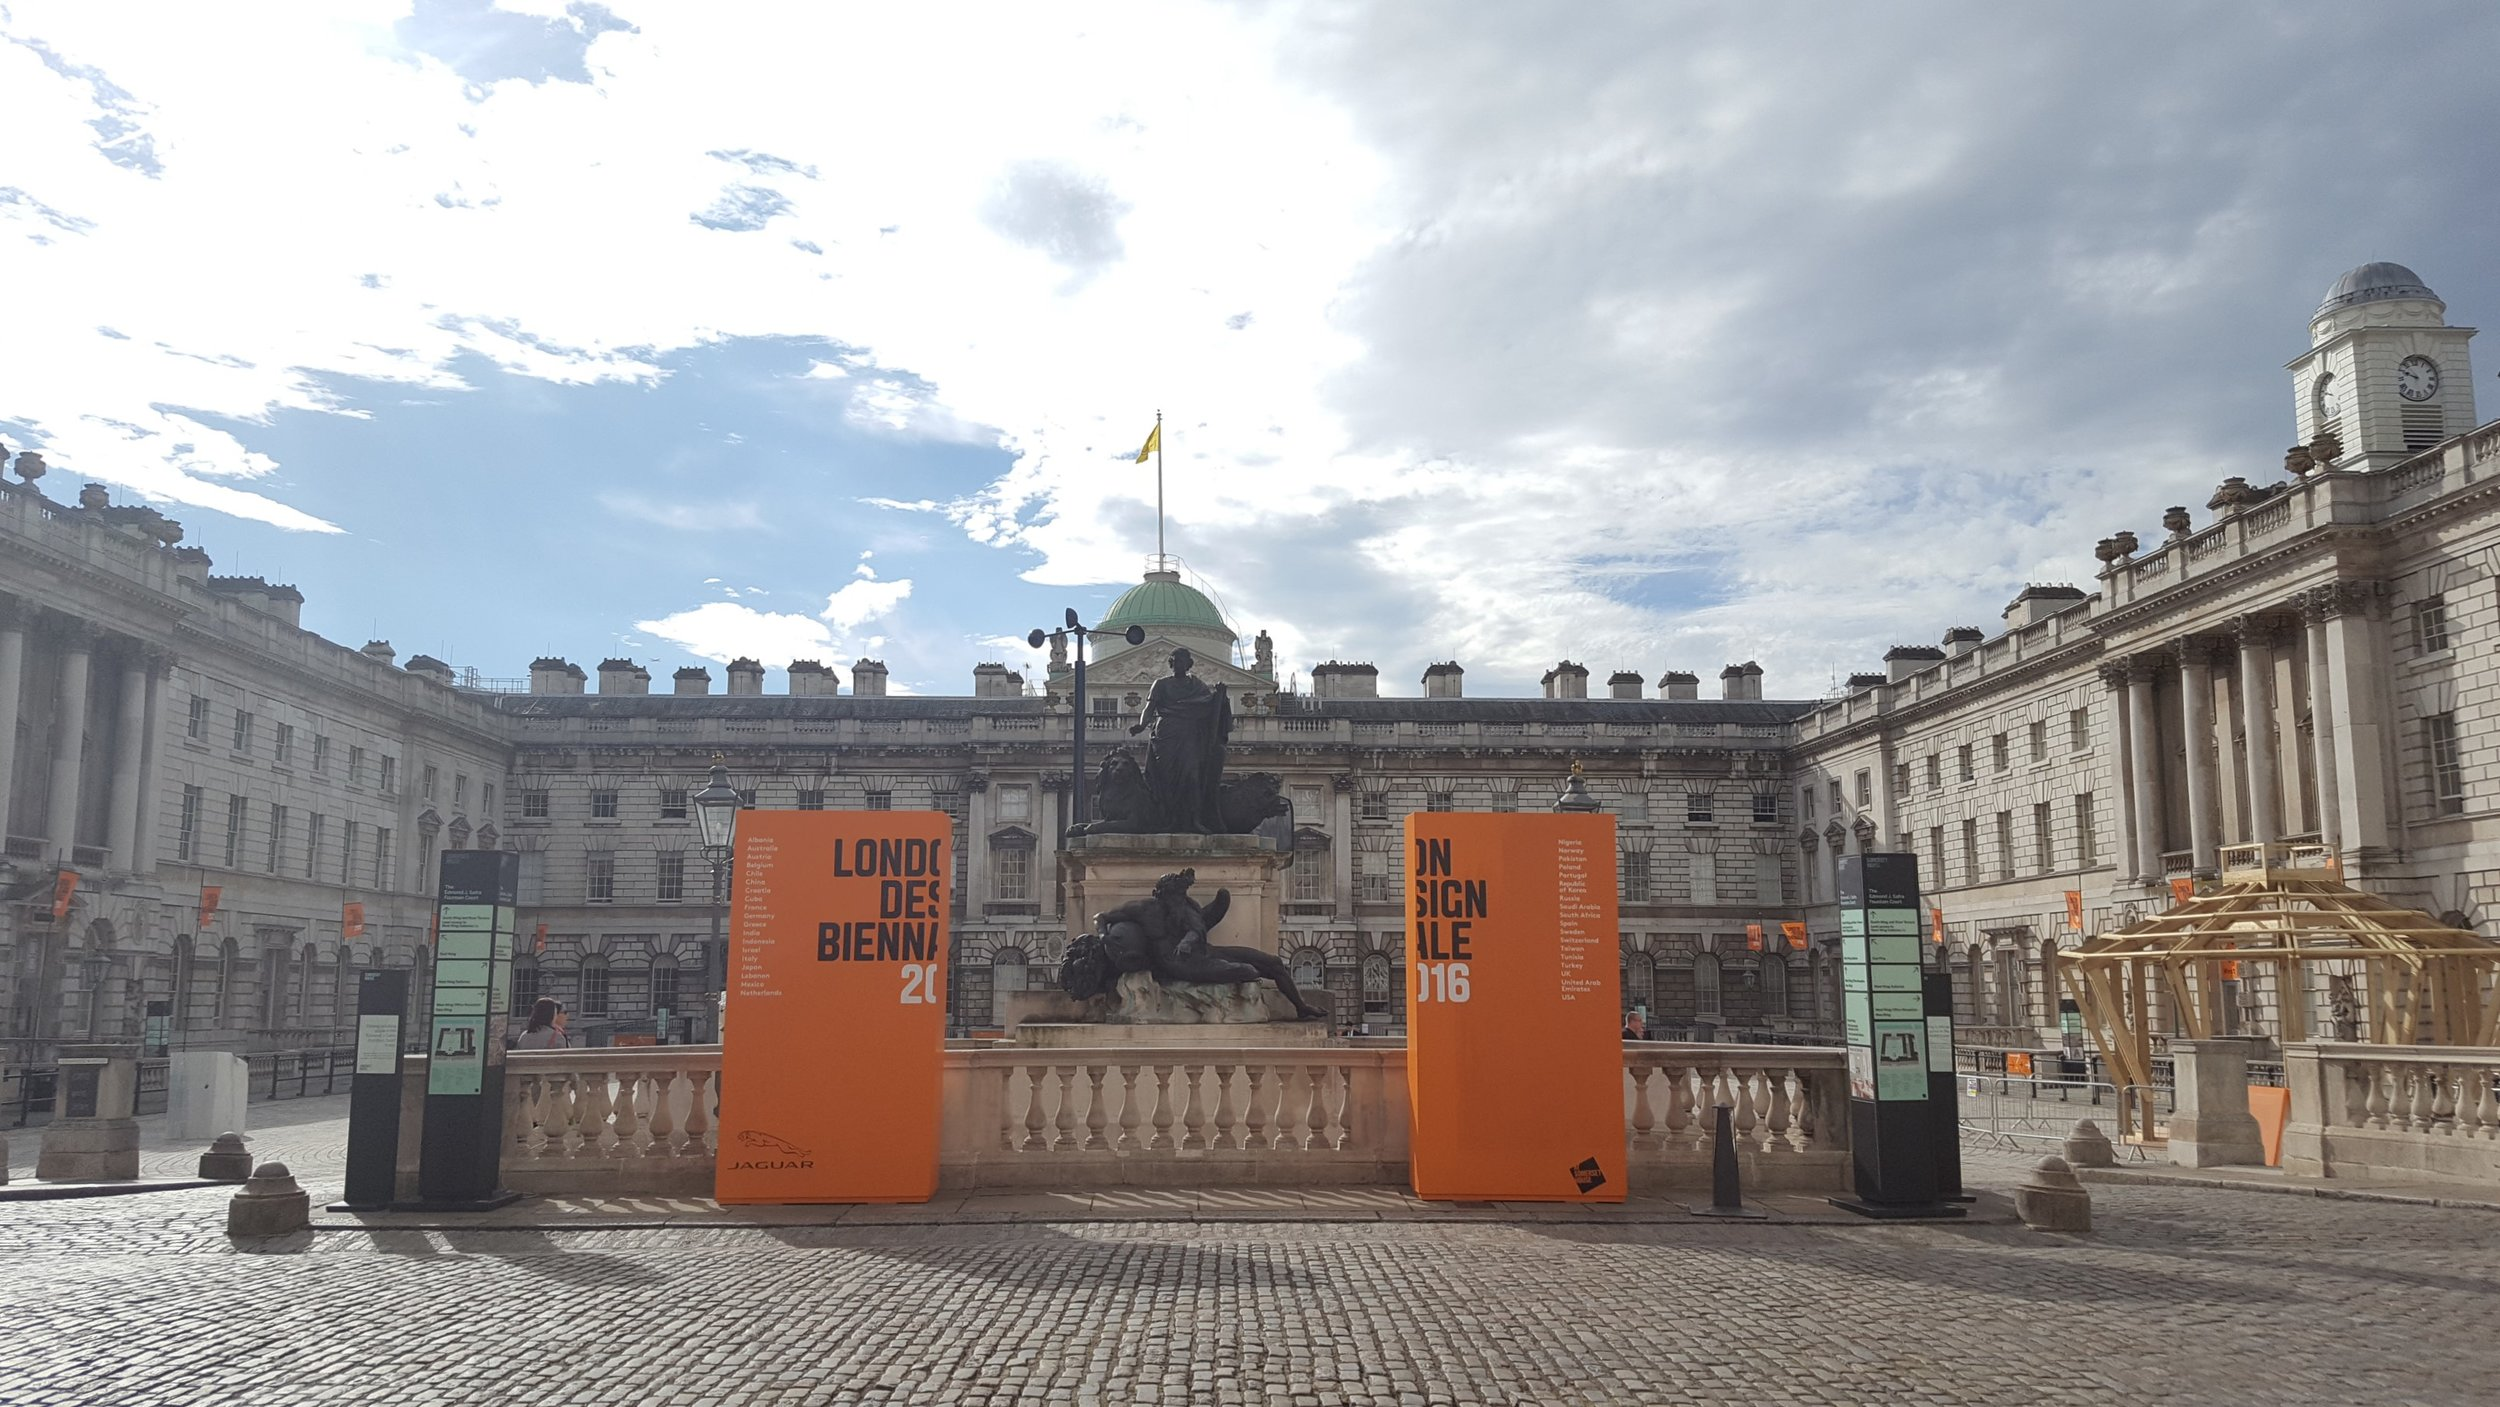 London Design Biennale held at Somerset House this year